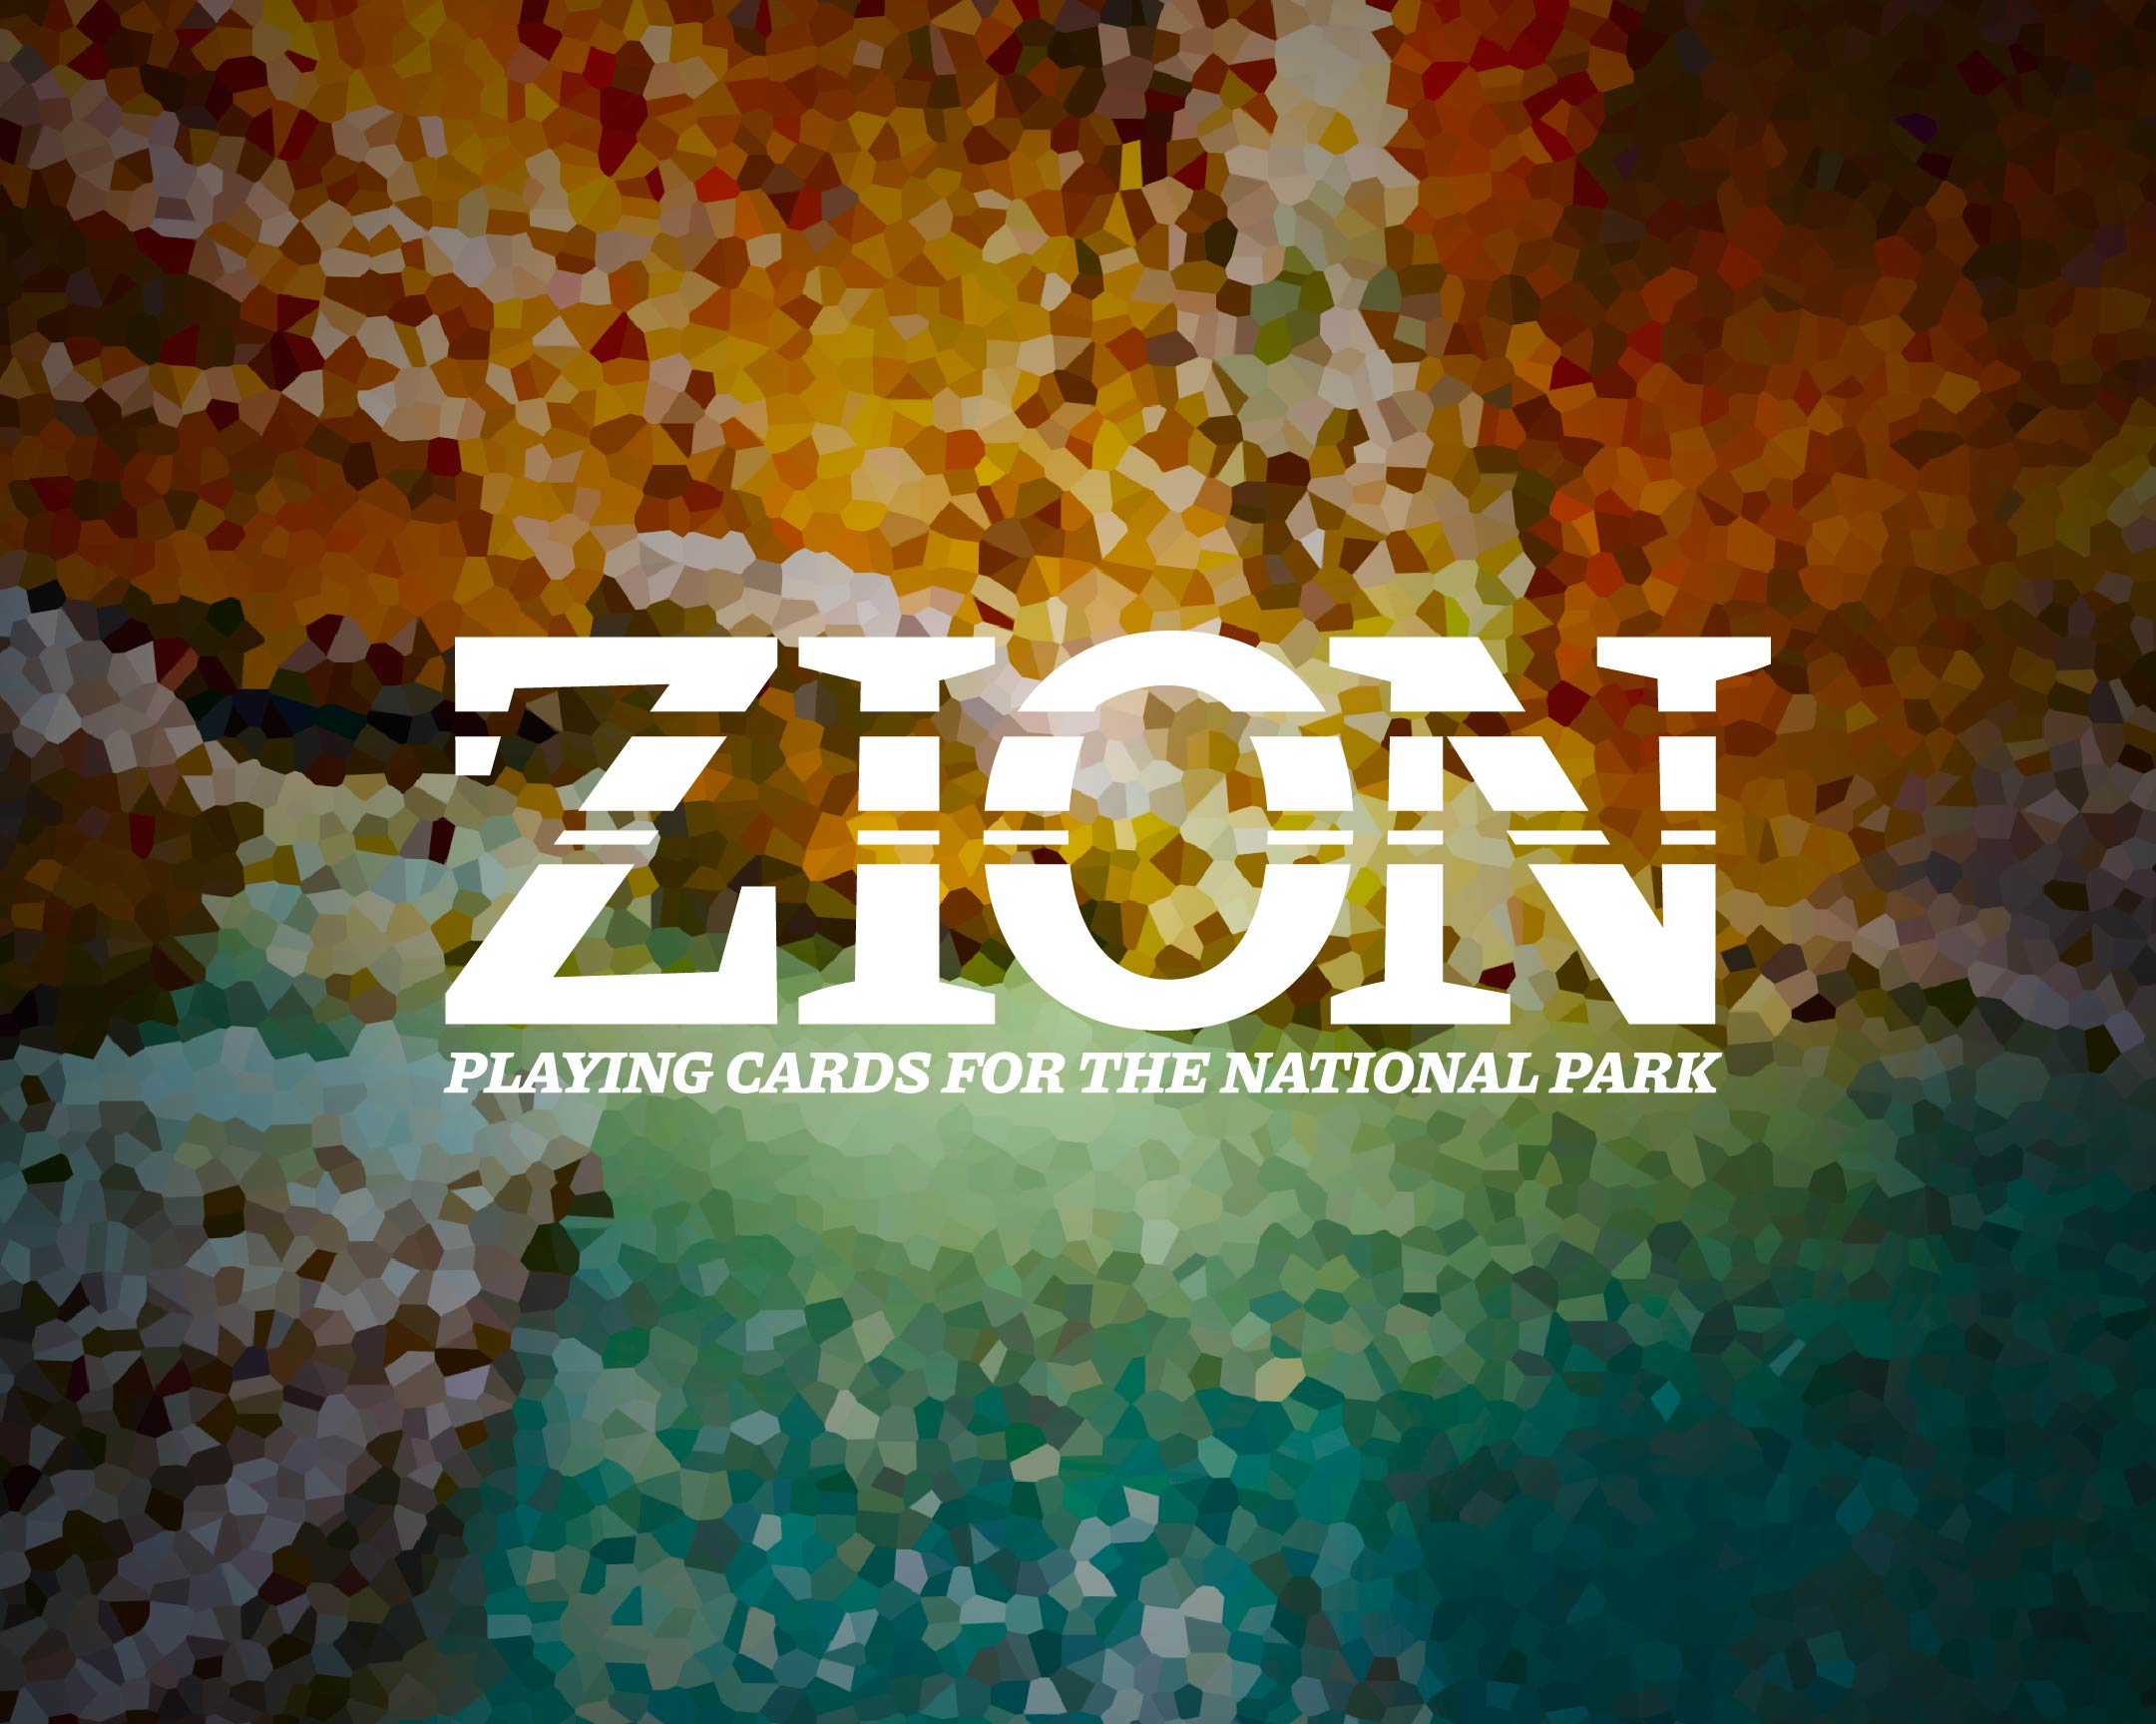 A colorful flat design featuring colors found in Zion National Park.